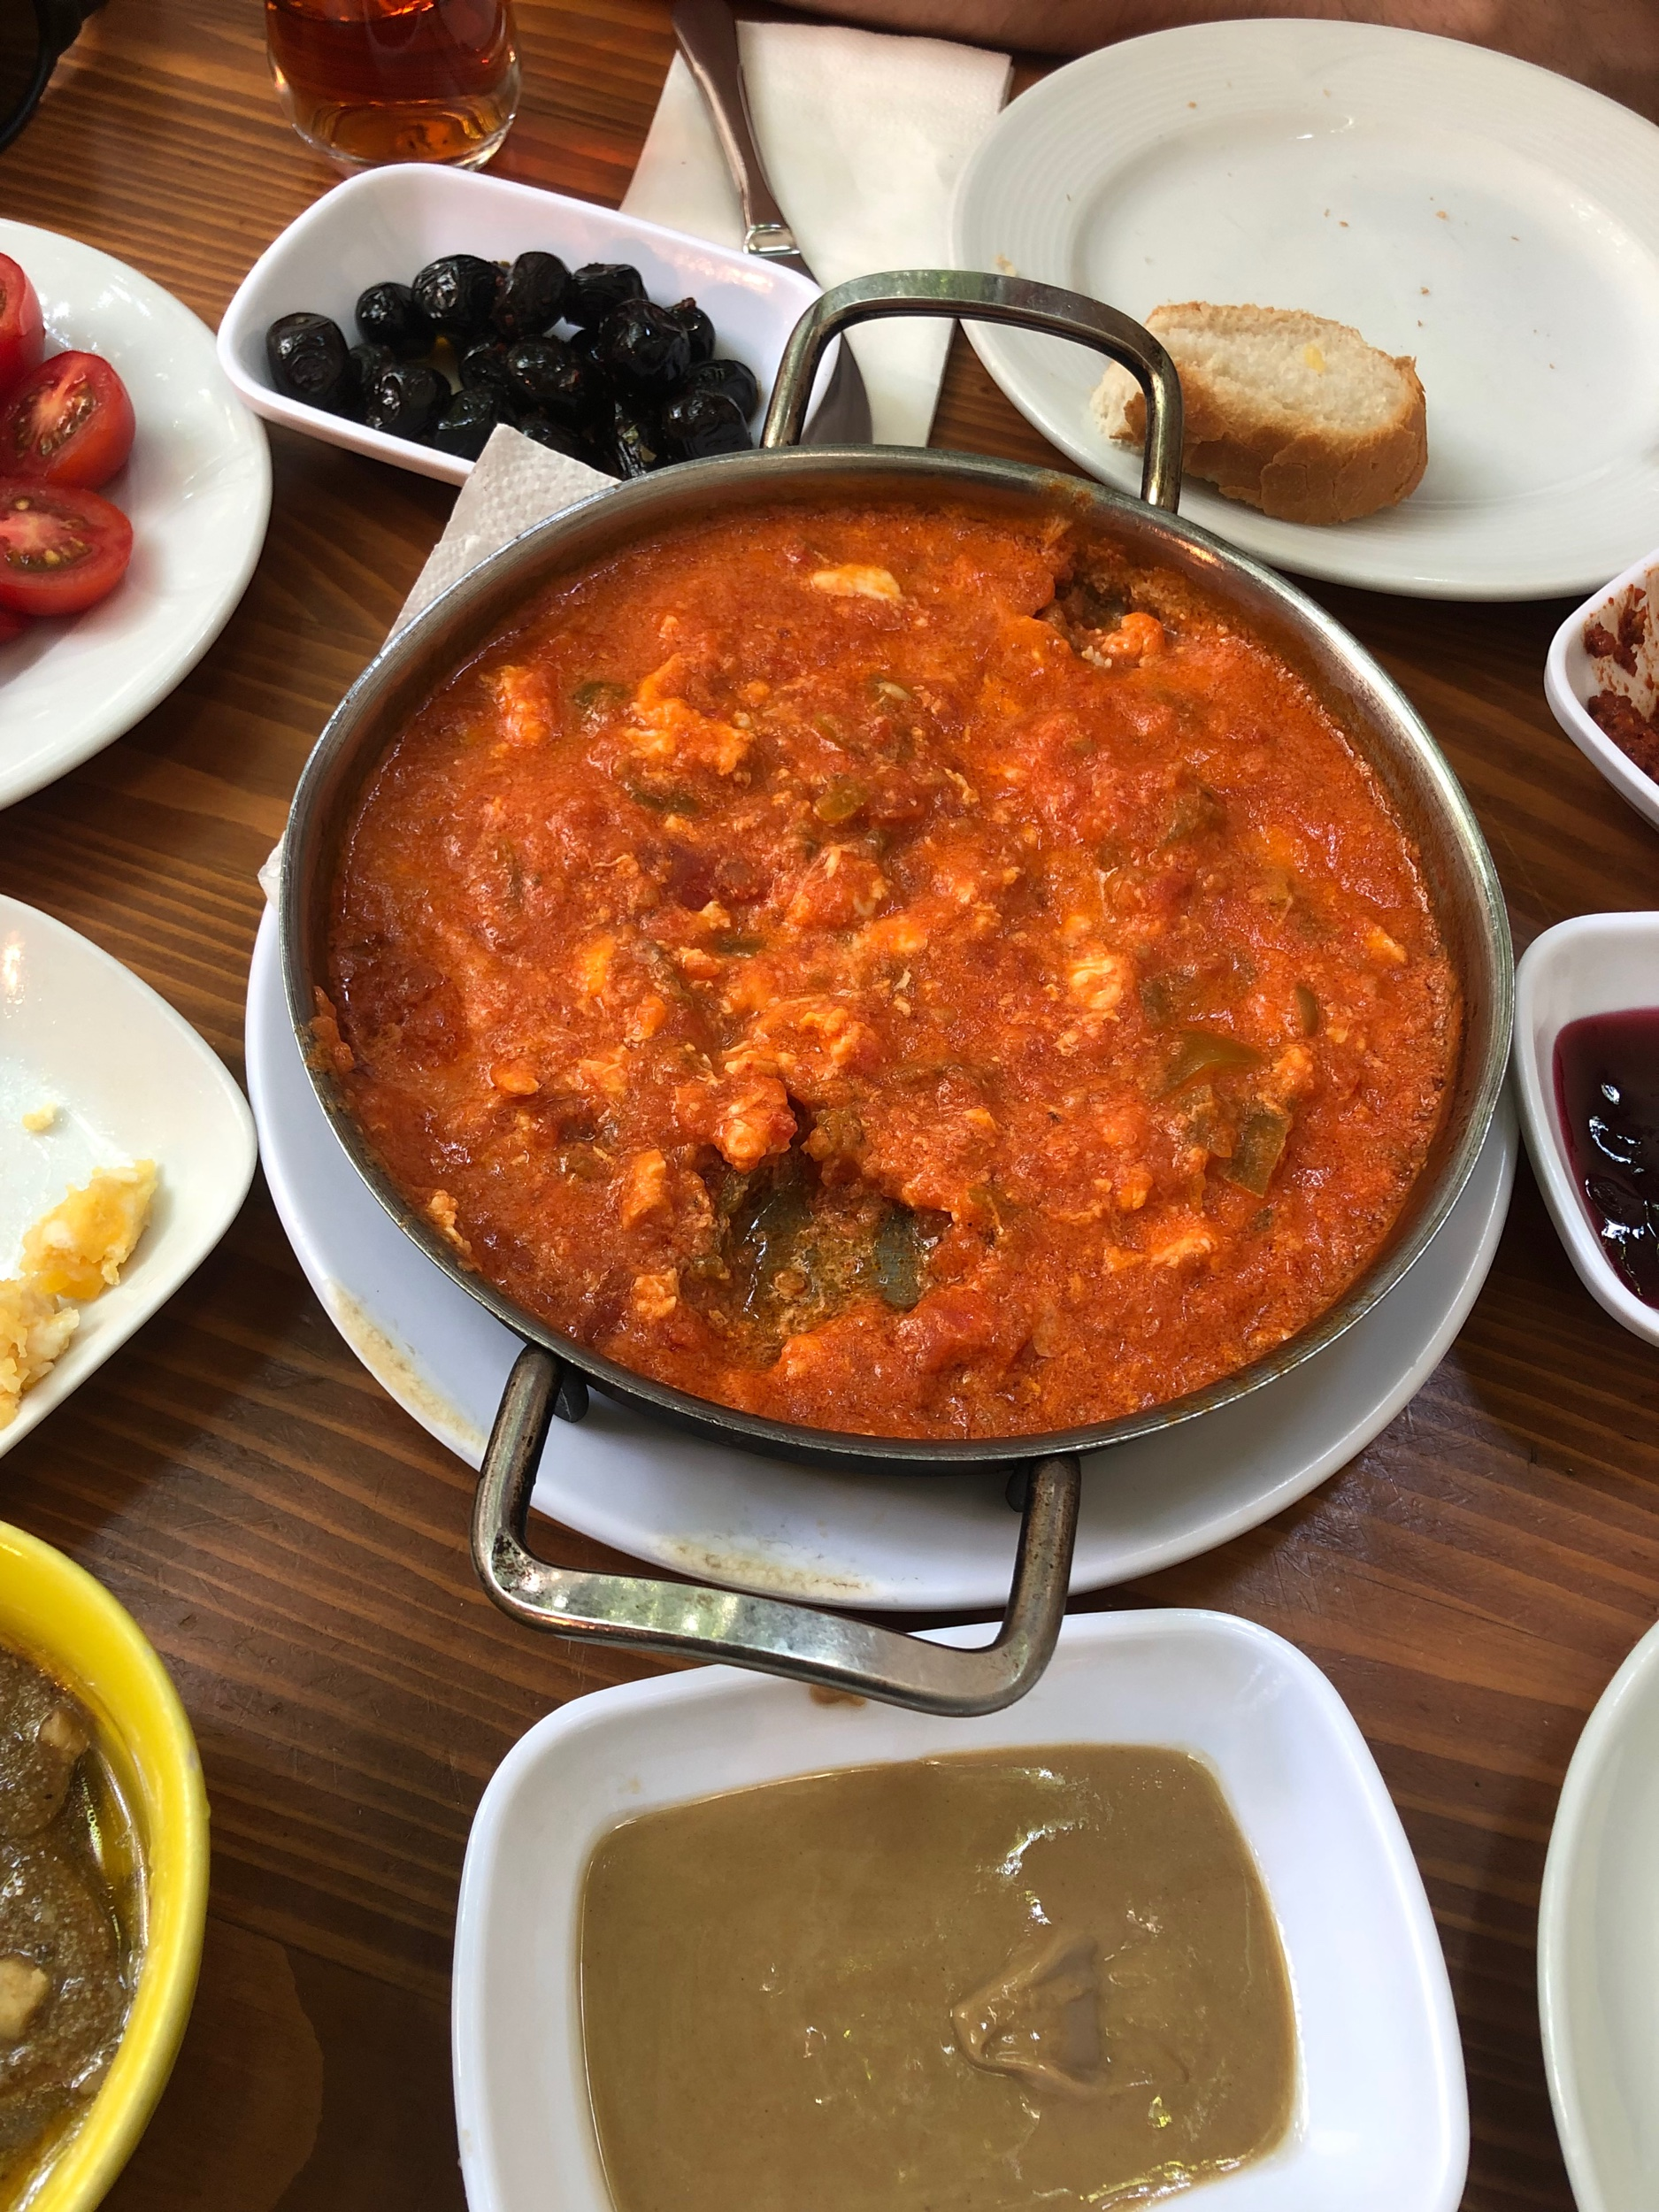 Traditional Turkish Breakfast - Tomato Scrambled Eggs with Cheese